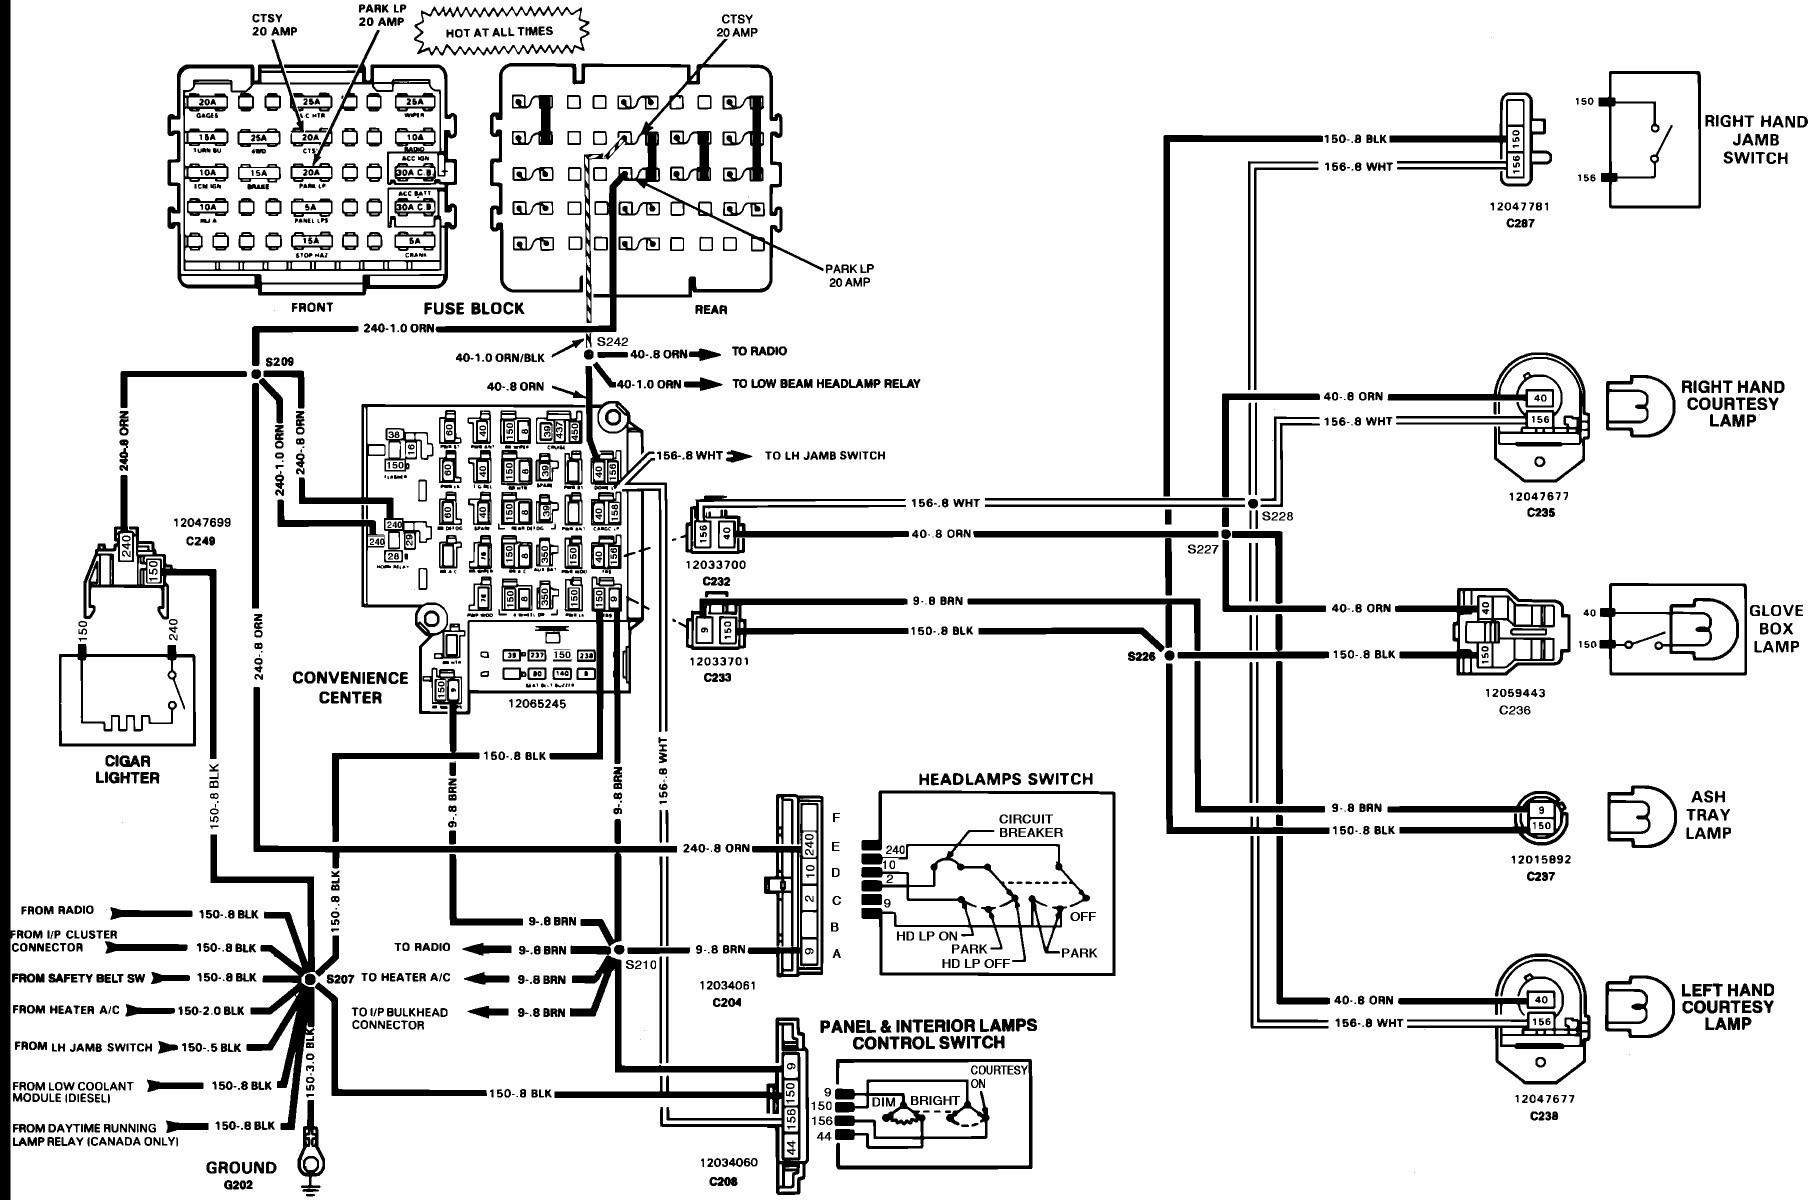 Volvo V50 Wiring Diagram - Wiring Diagrams